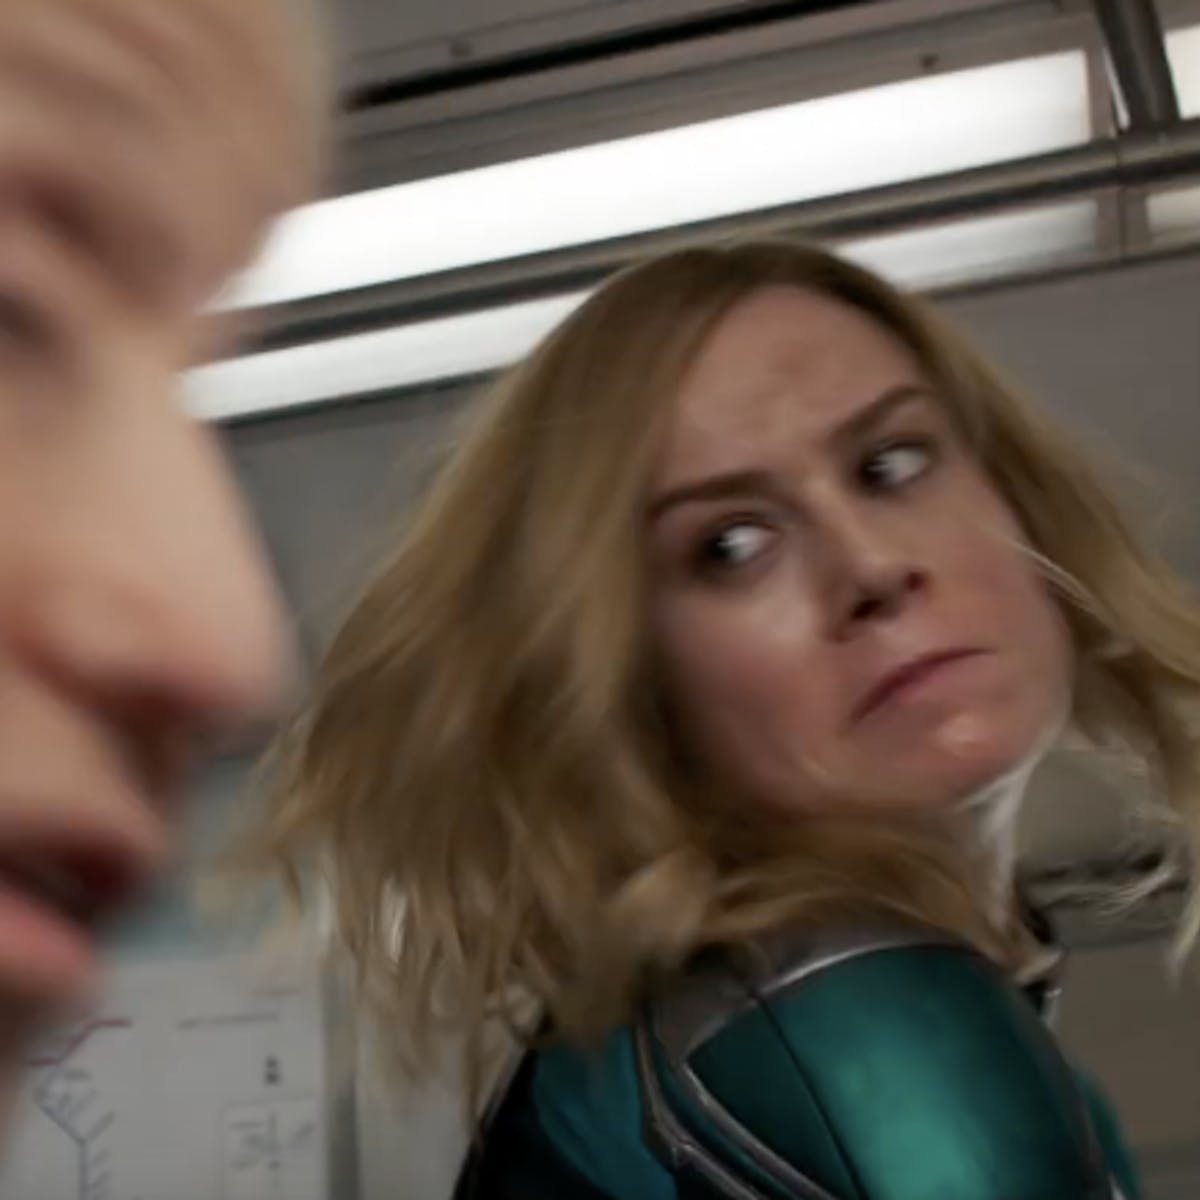 captain marvel' new trailer reveals why she punched that old lady